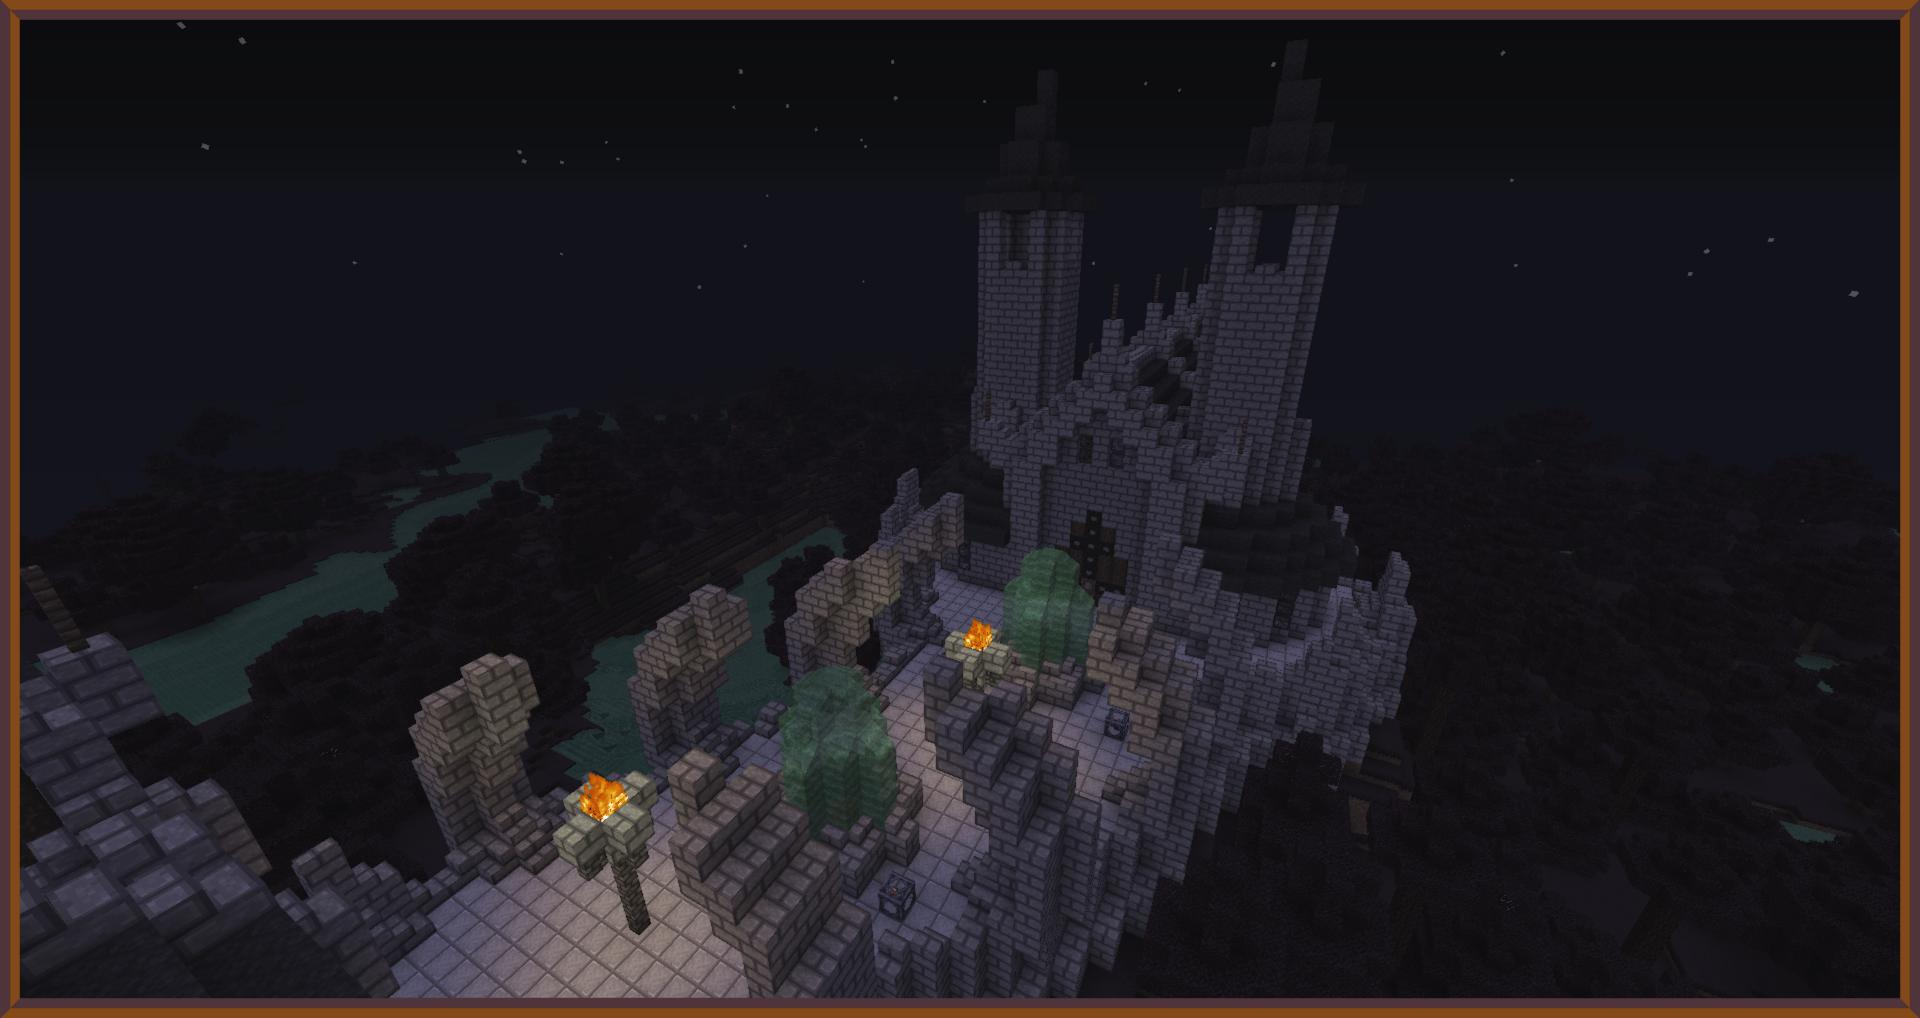 http://minecraft-forum.net/wp-content/uploads/2013/09/e0591__Mystery-of-the-Pumpkin-Castle-Map-4.jpg